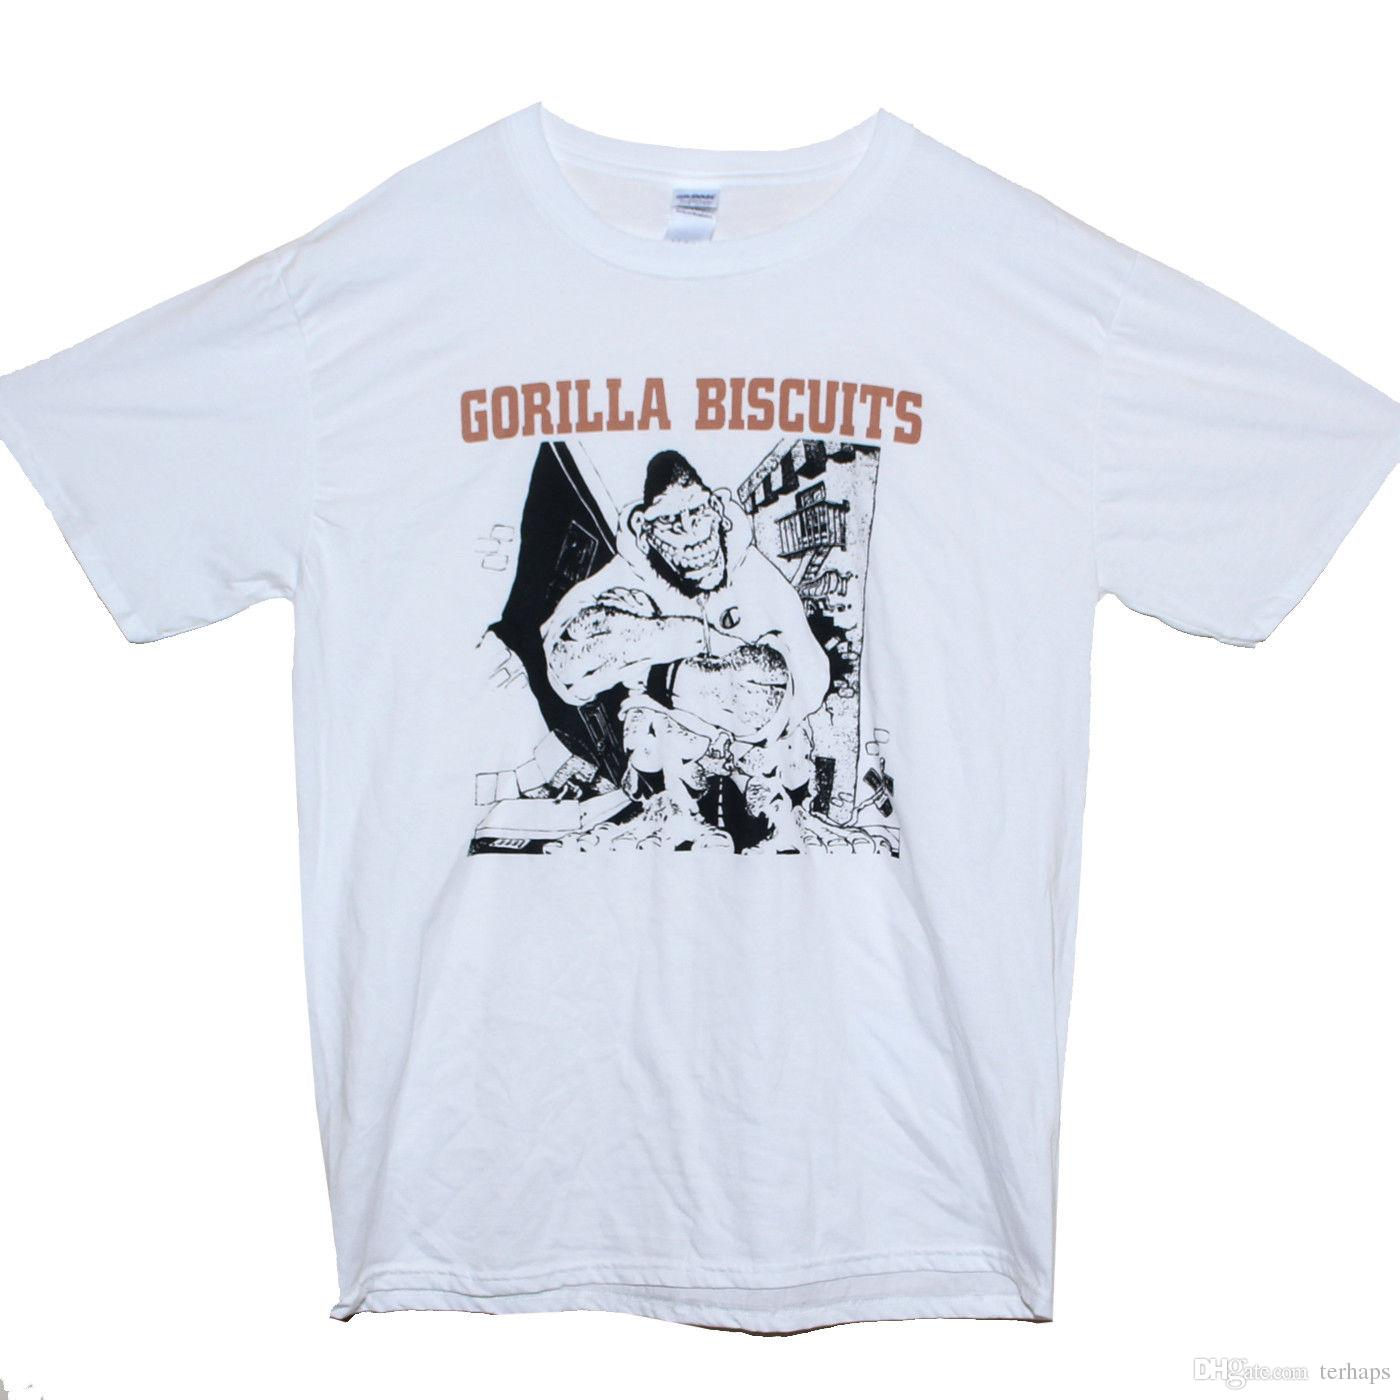 83a28d3d4 GORILLA BISCUITS T SHIRT Hardcore Punk Rock NOFX Minor Threat Band Graphic  Tee Funny Slogan T Shirts Cool Shirt Design From Terhaps, $10.89  DHgate.Com